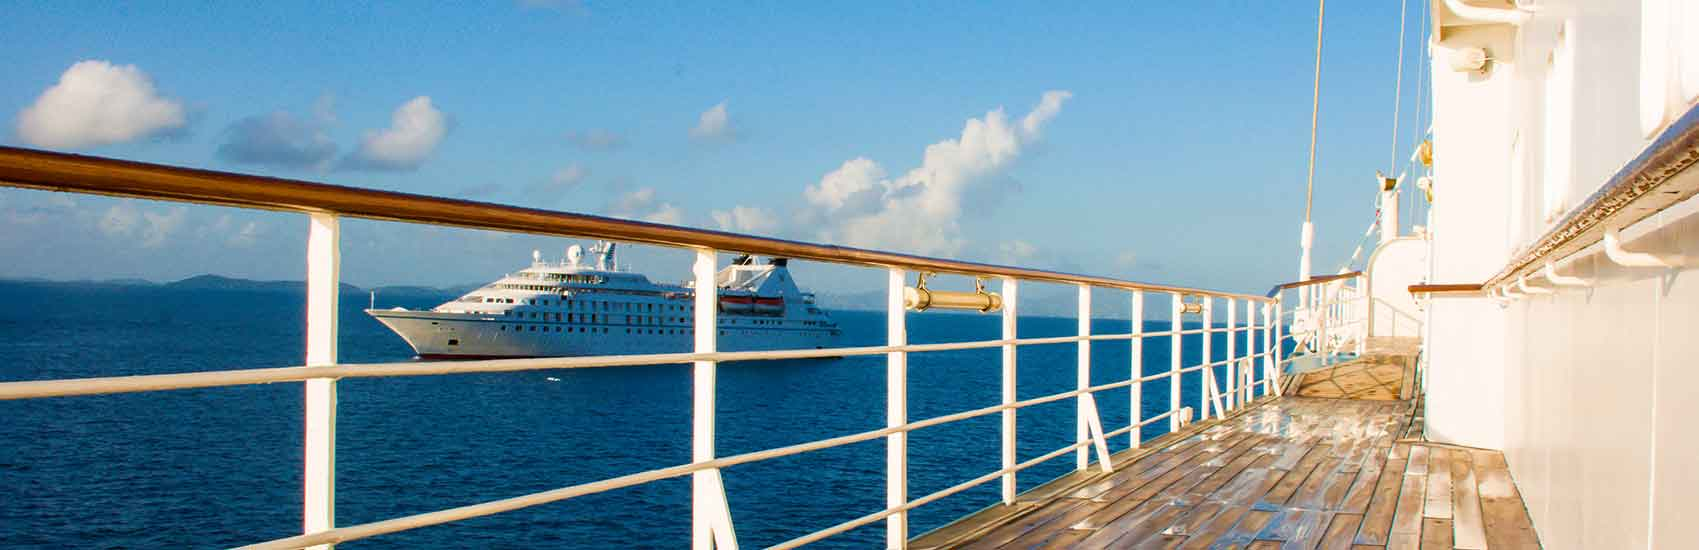 Windstar Cruises Commitment to Health and Safety